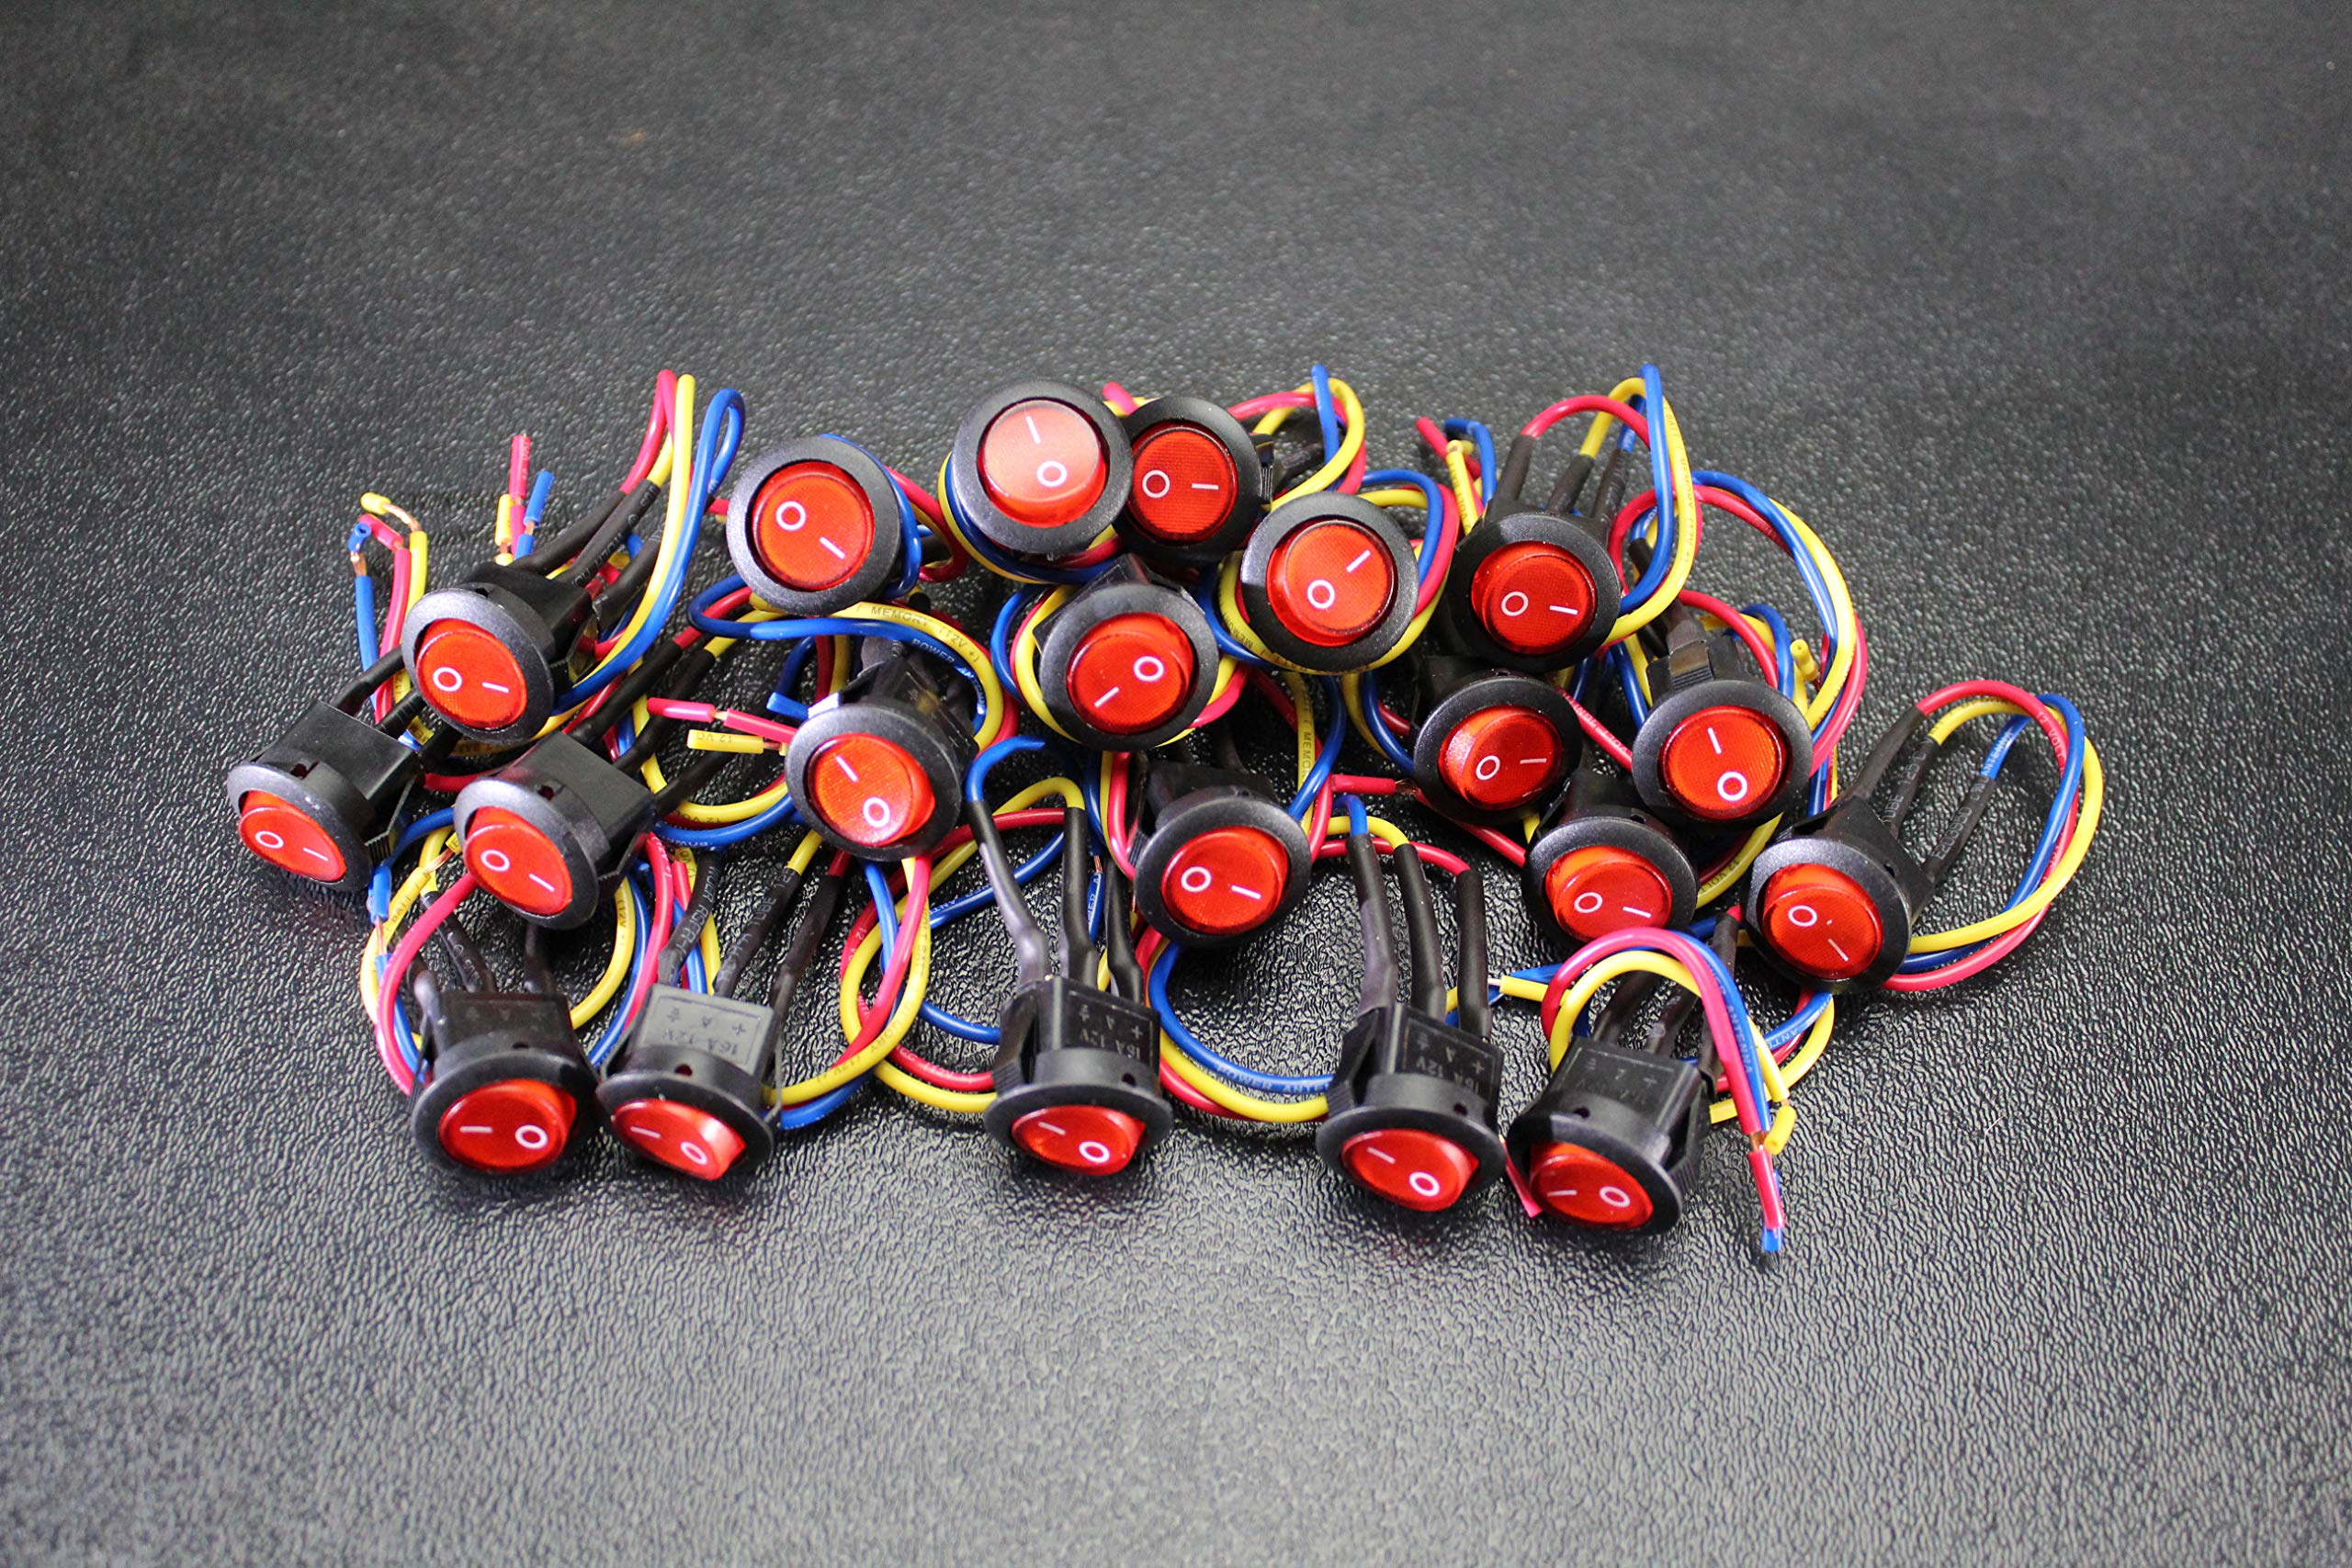 20 PCS Rocker Switch ON Off RED Toggle LED 12V 16 AMP 3 PIN IS-EC-IR1216RED by ENNIS ELECTRONICS